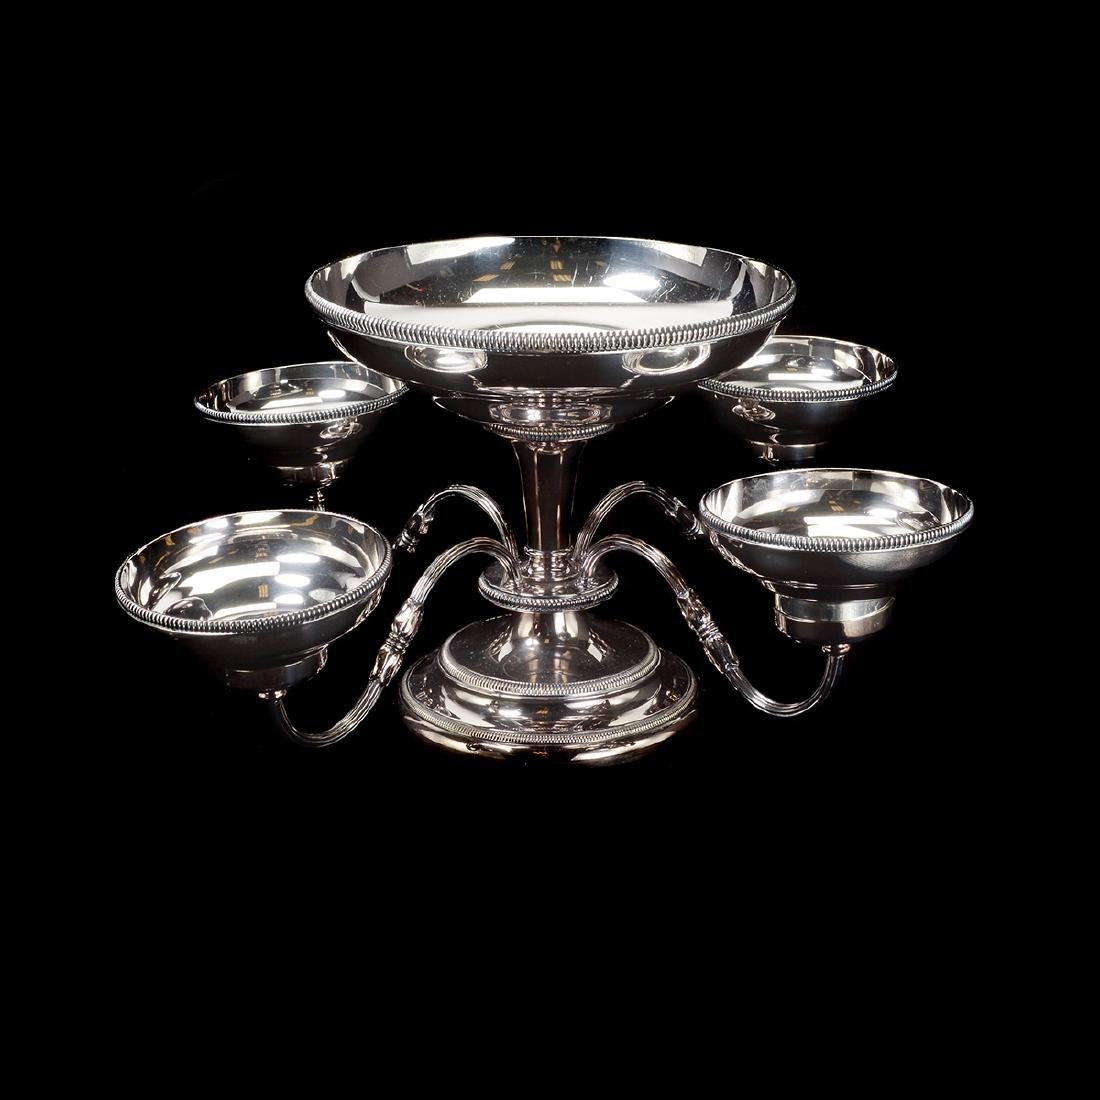 Silverplate Epergne